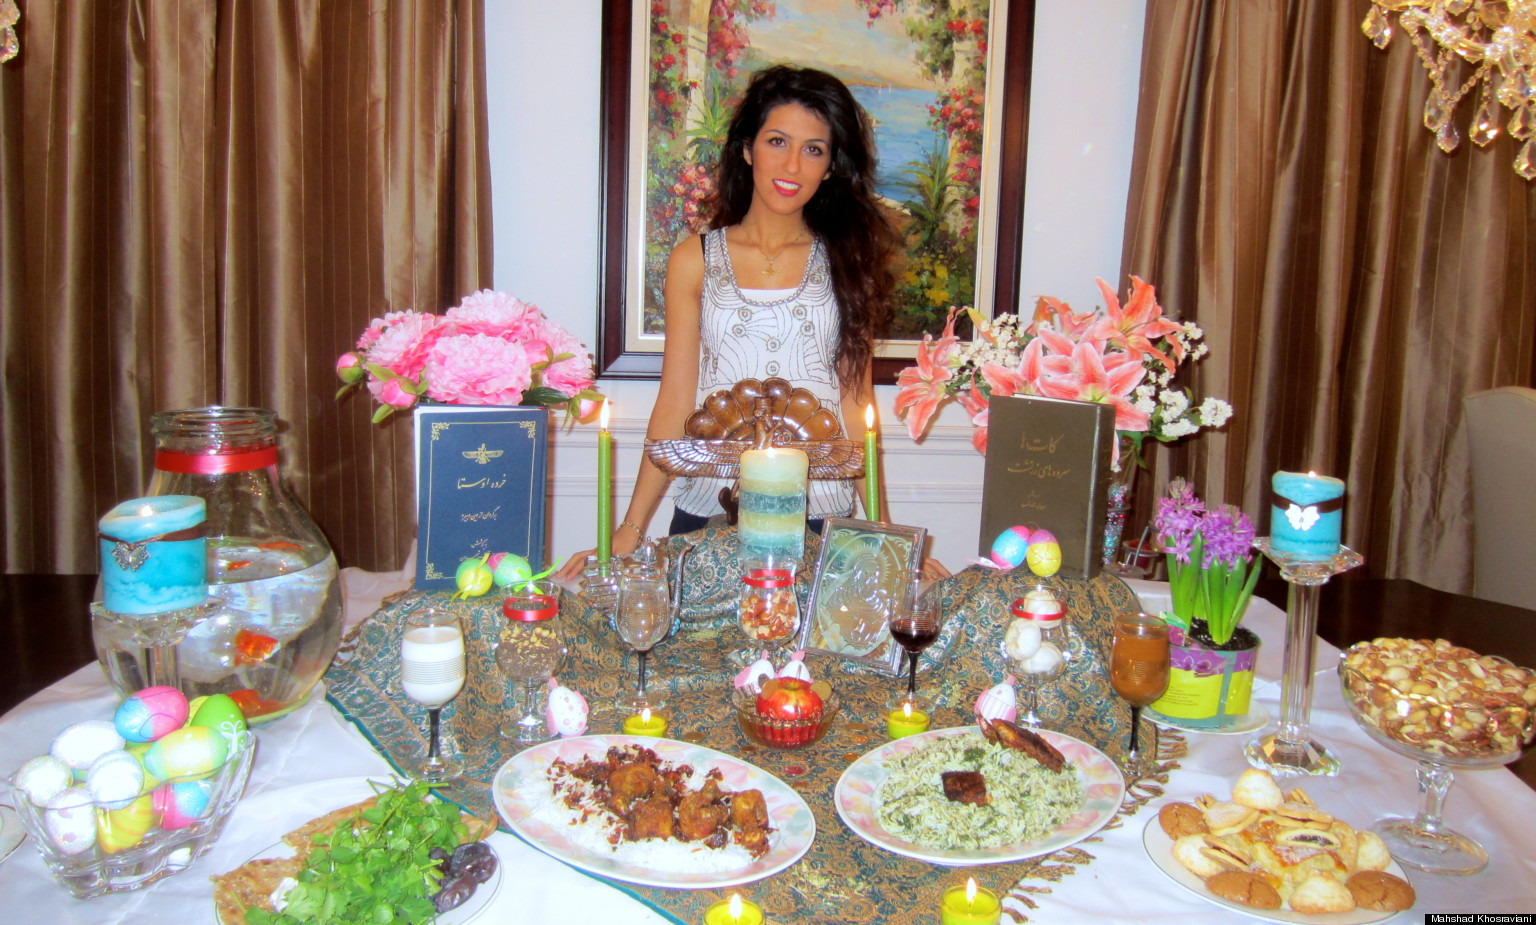 norooz persian new year The united nations' (un) international day of nowruz celebrates the start of the persian spring festival march 21 ever year it occurs on or around the time of the.